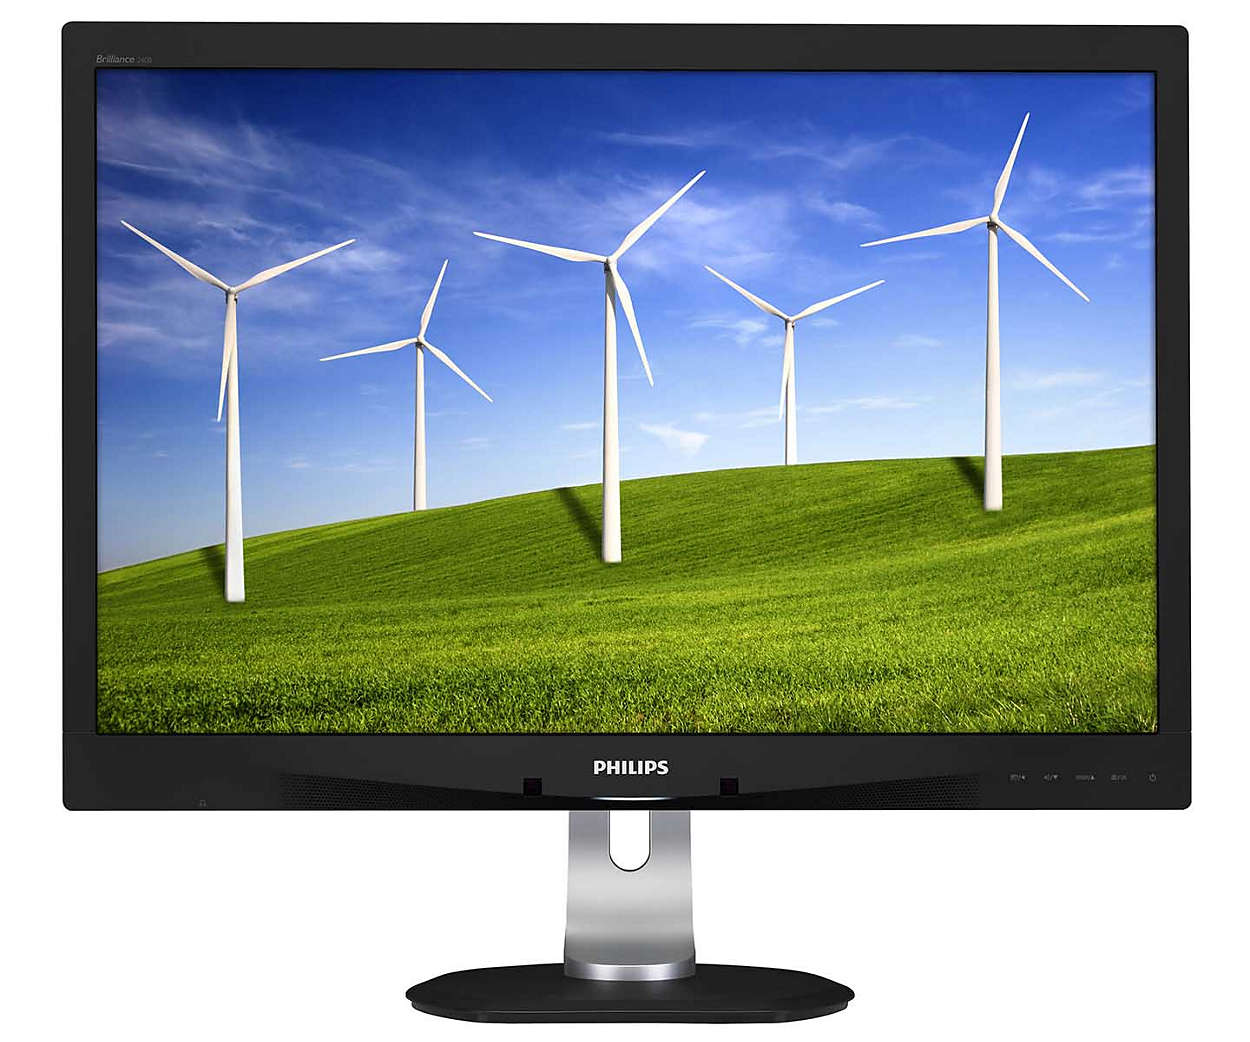 "Philips LCD 240B4QPYEB 24""wide/1920x1200/5ms/20mil:1/VGA/DVI/DP/2xUSB/LED/PLS/PowerSensor/pivot/repro"